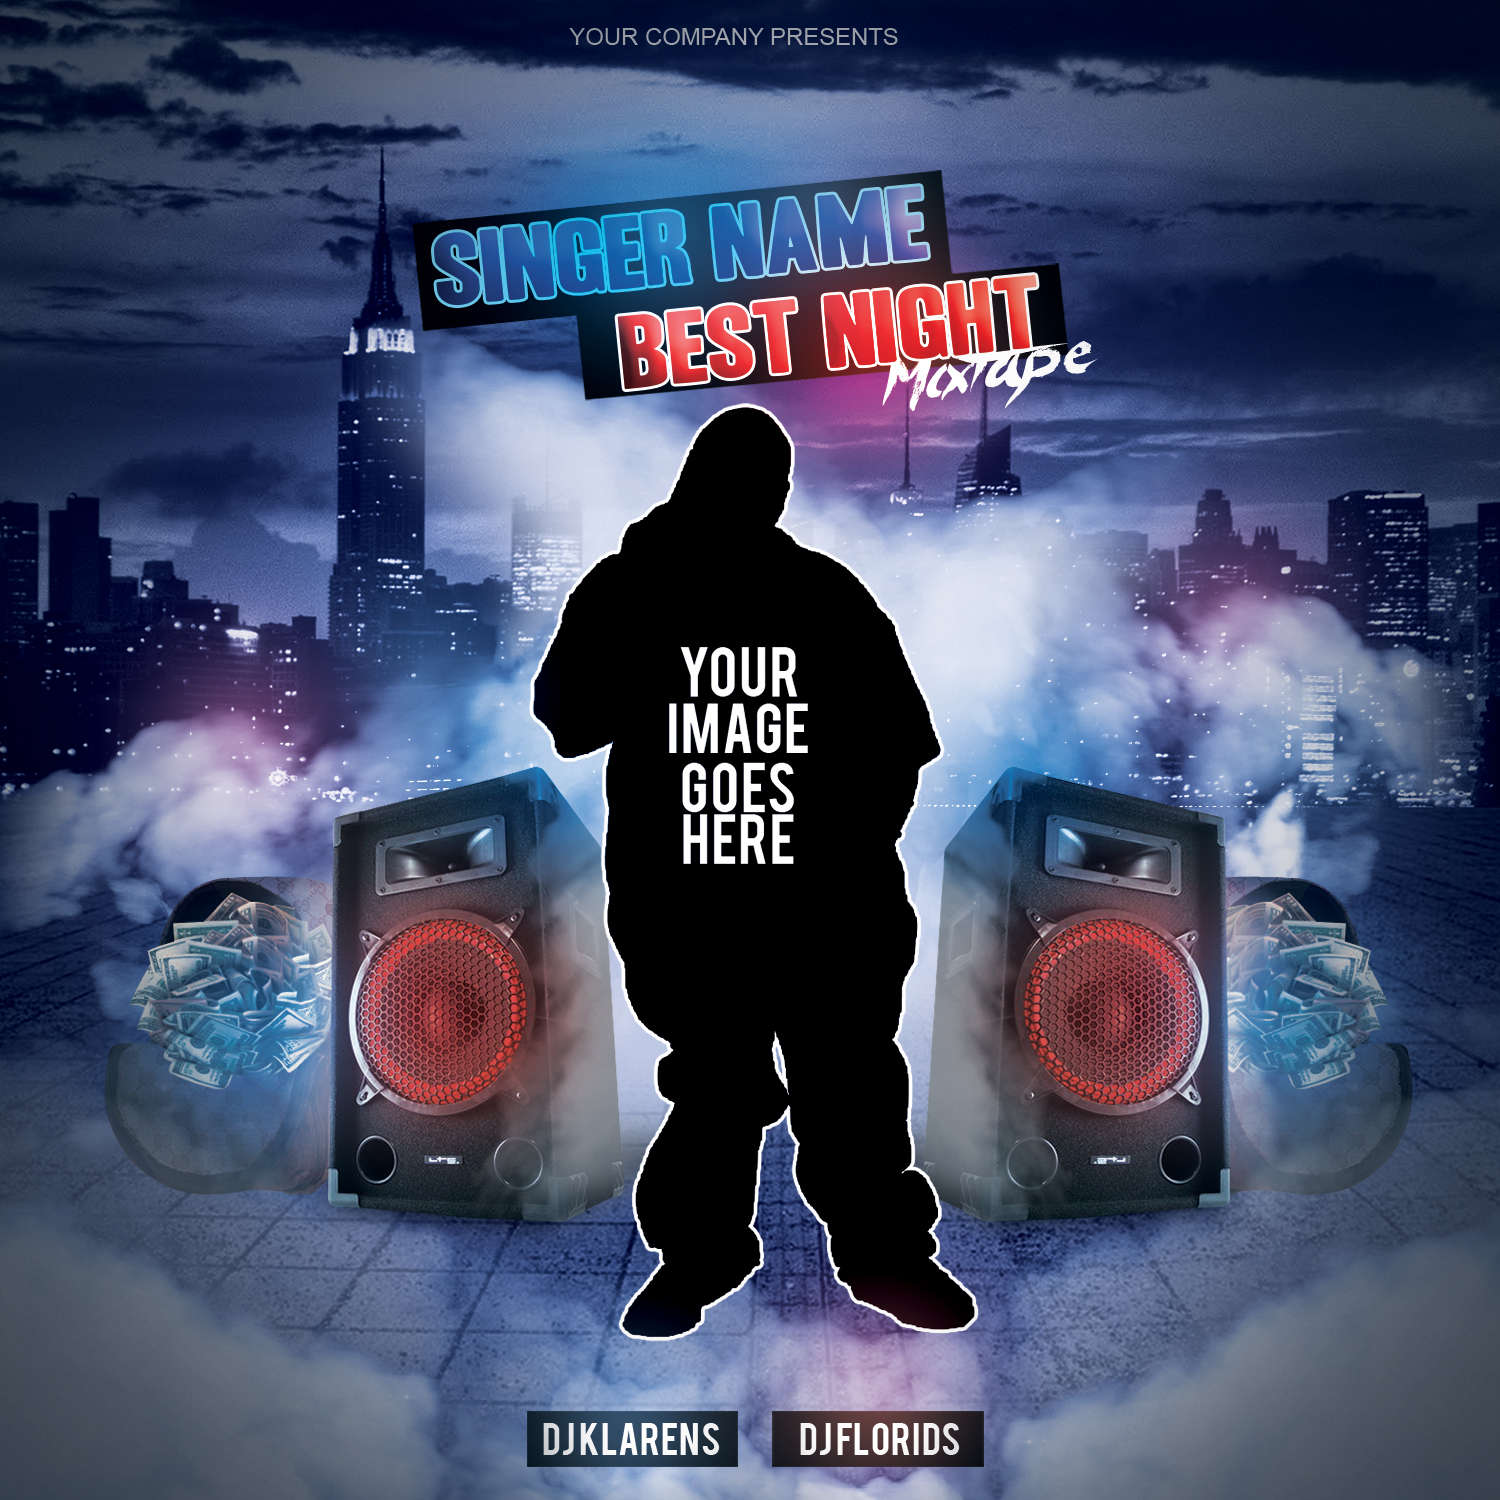 Mixtape album cd cover free psd template by klarensm on for Free mixtape covers templates